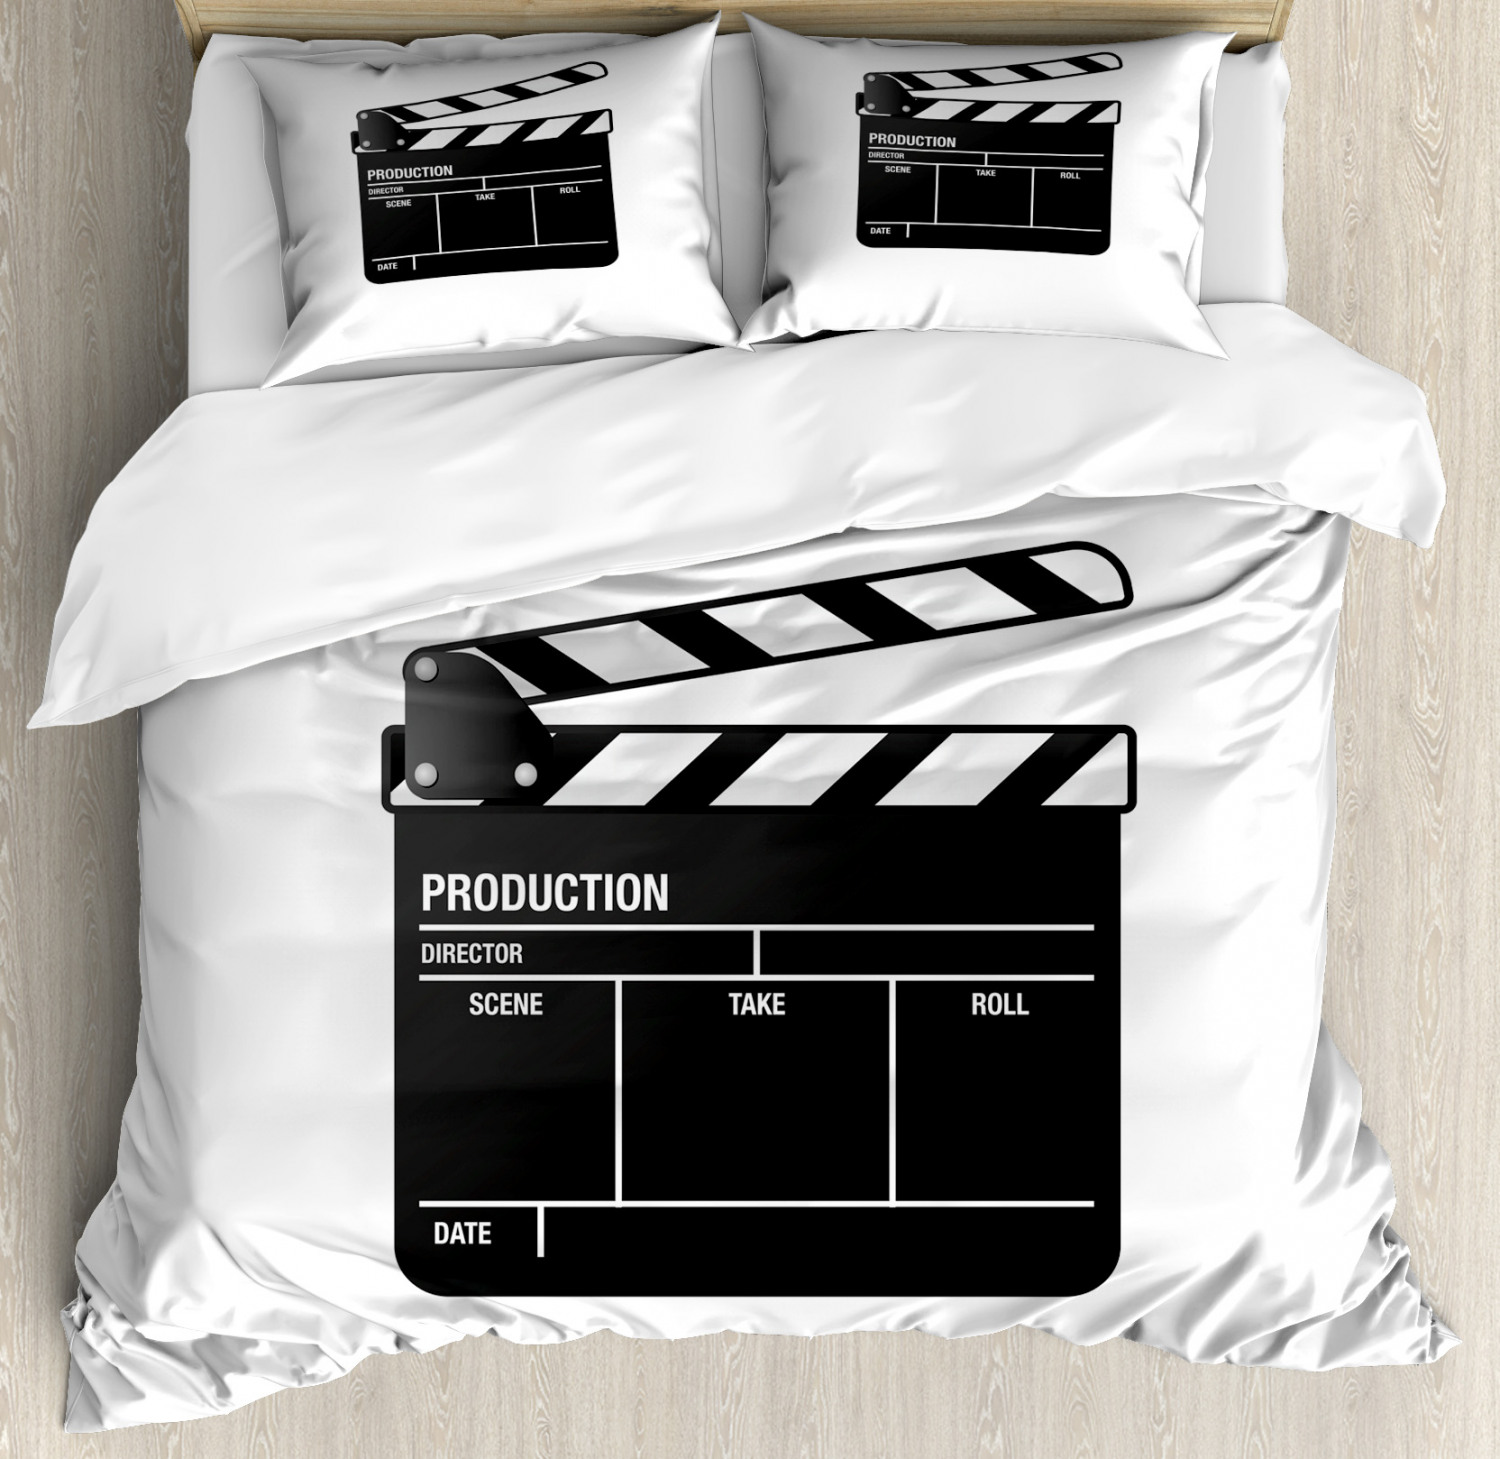 Movie Duvet Cover Set with Pillow Shams Film and Video Industry Print